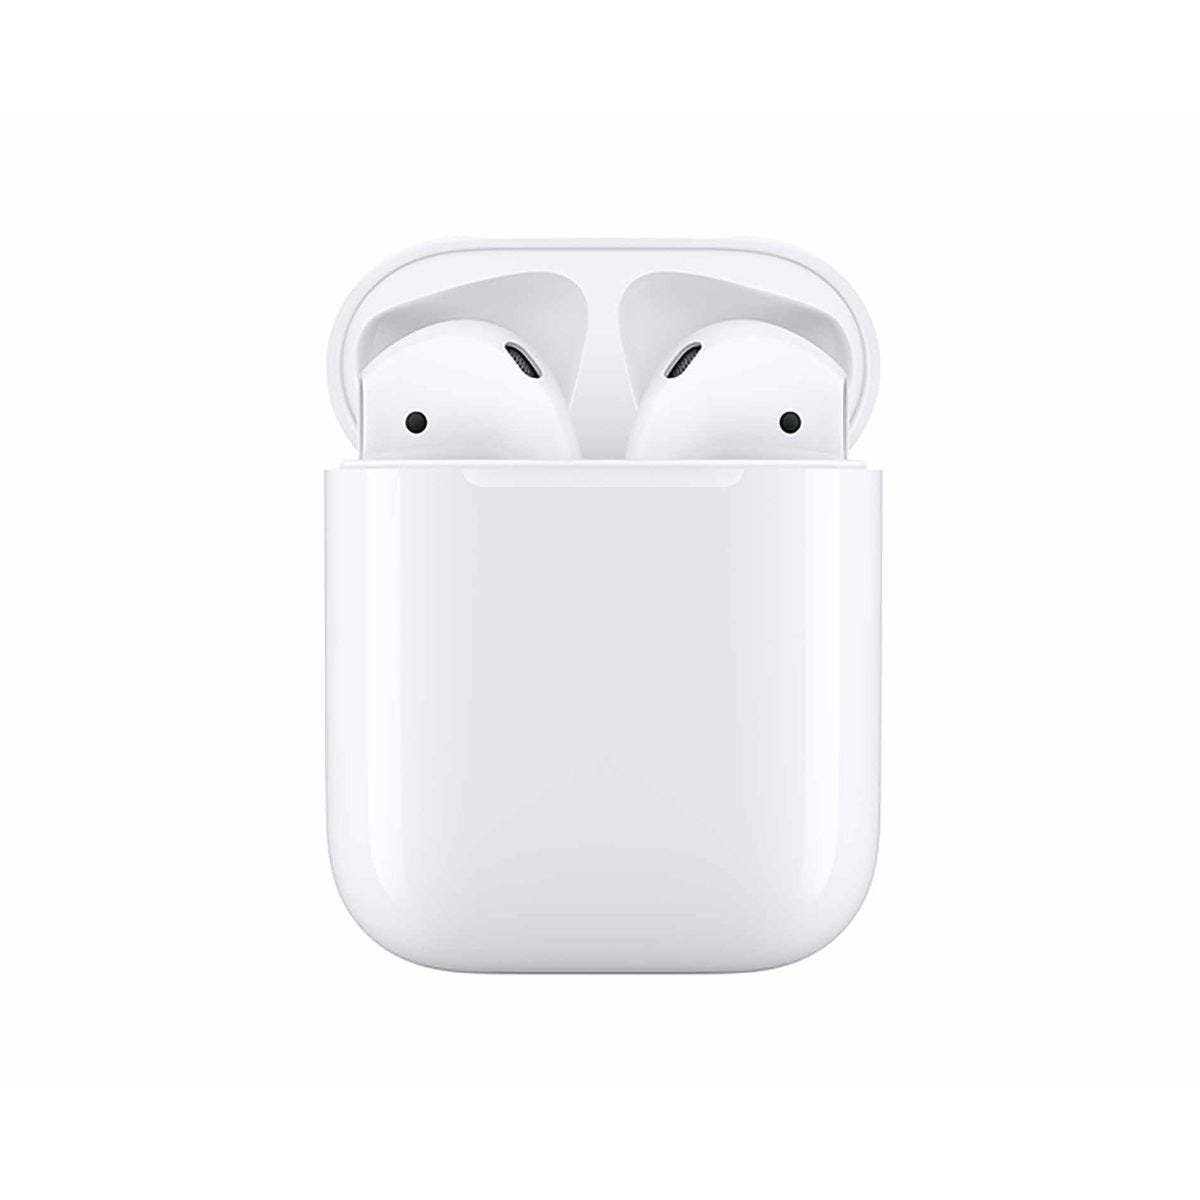 Apple AirPods with Charging Case Gen 2